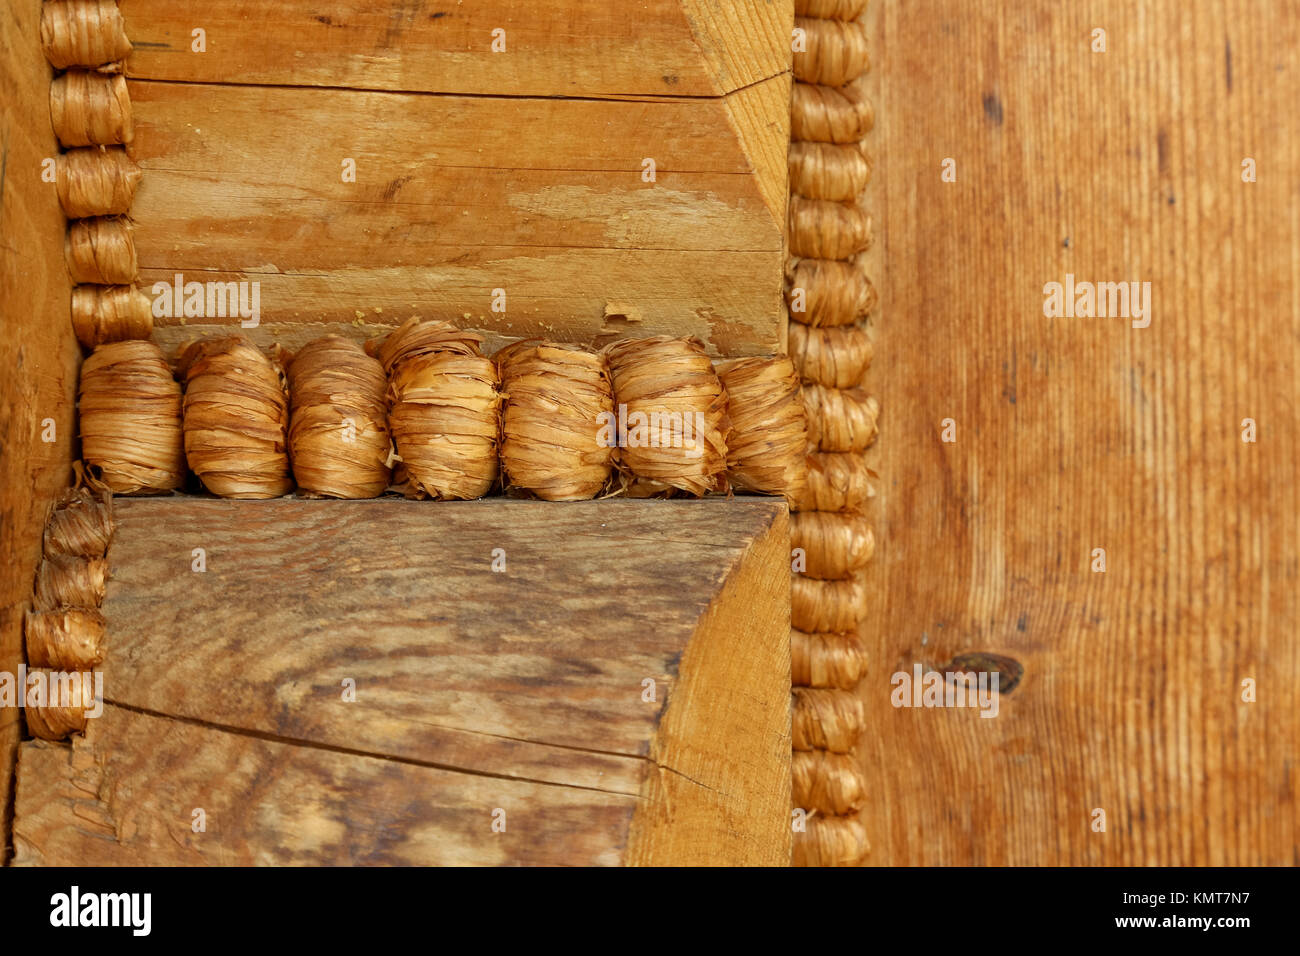 A fragment of the structure of a wooden house shows the joining of wooden logs and their sealing with specially - Stock Image